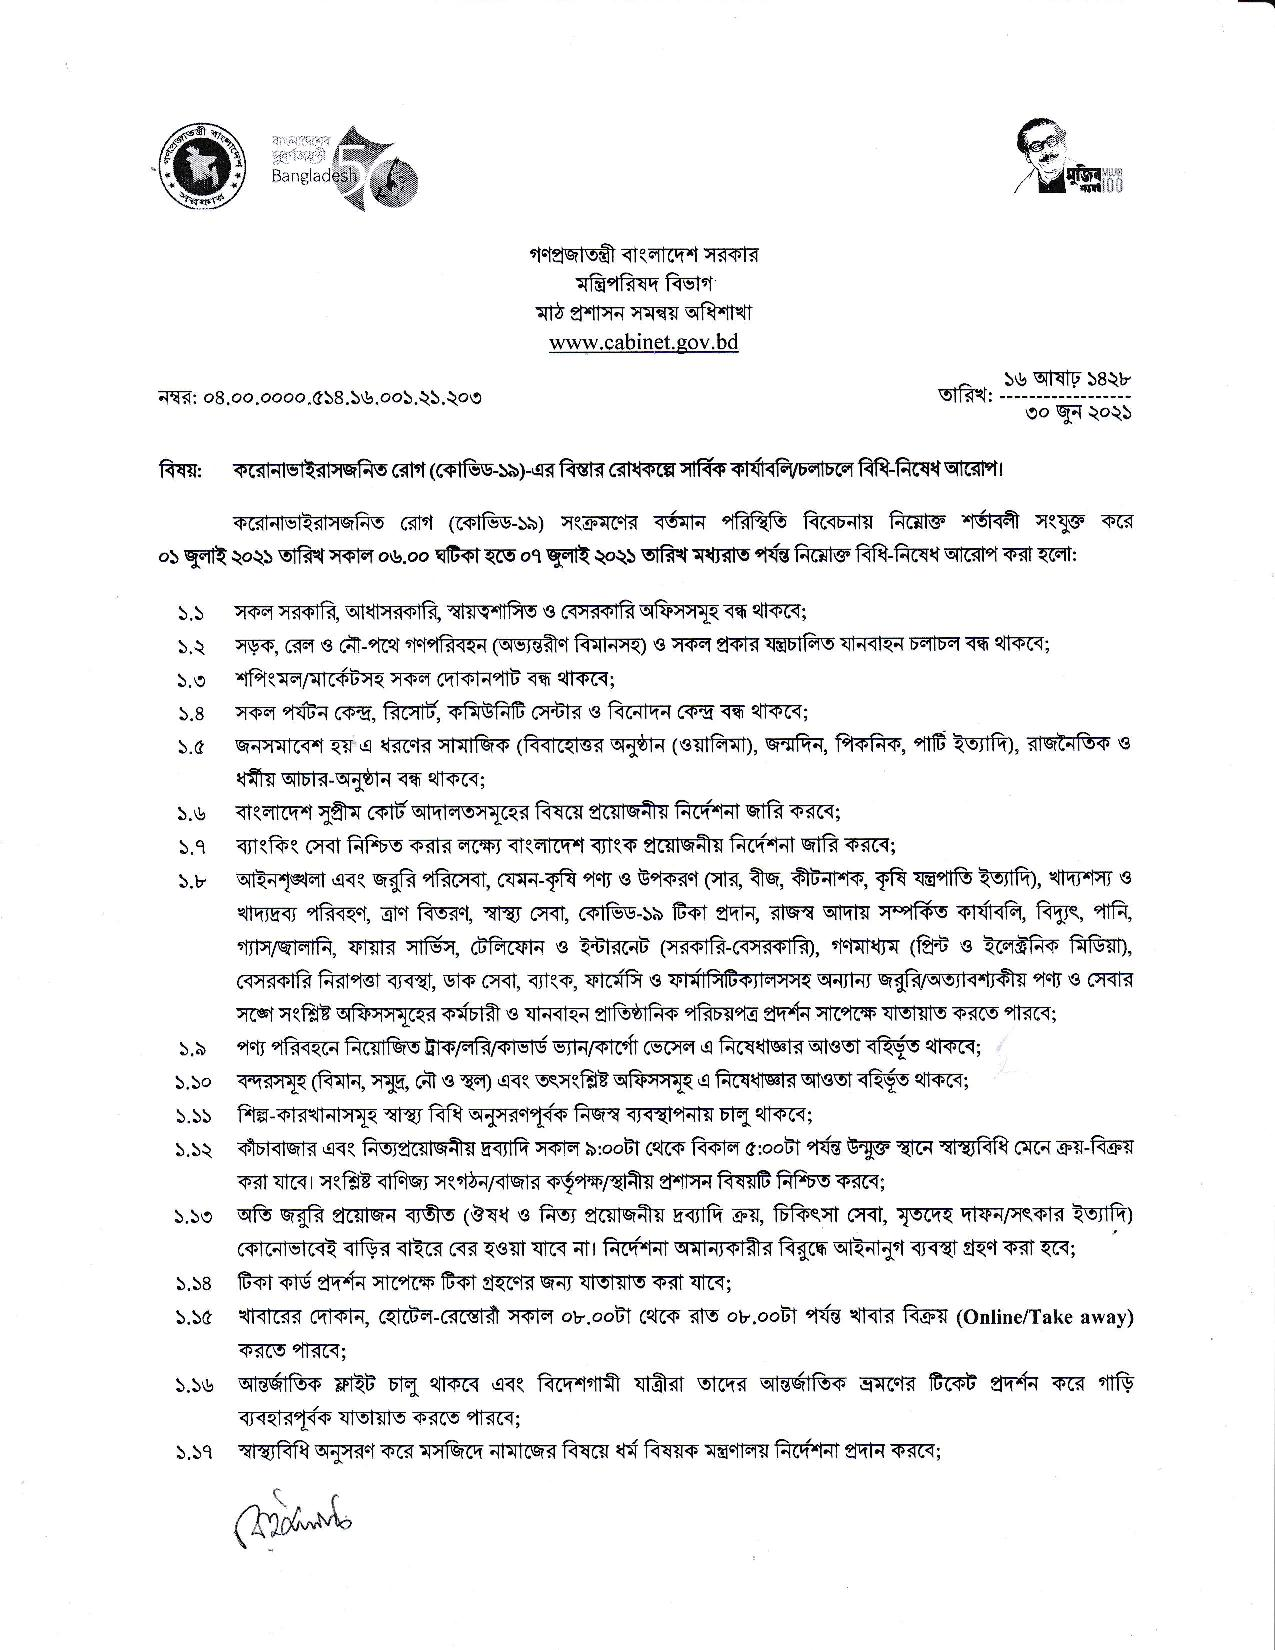 What is and isn't allowed during 'strict lockdown' Bangladesh